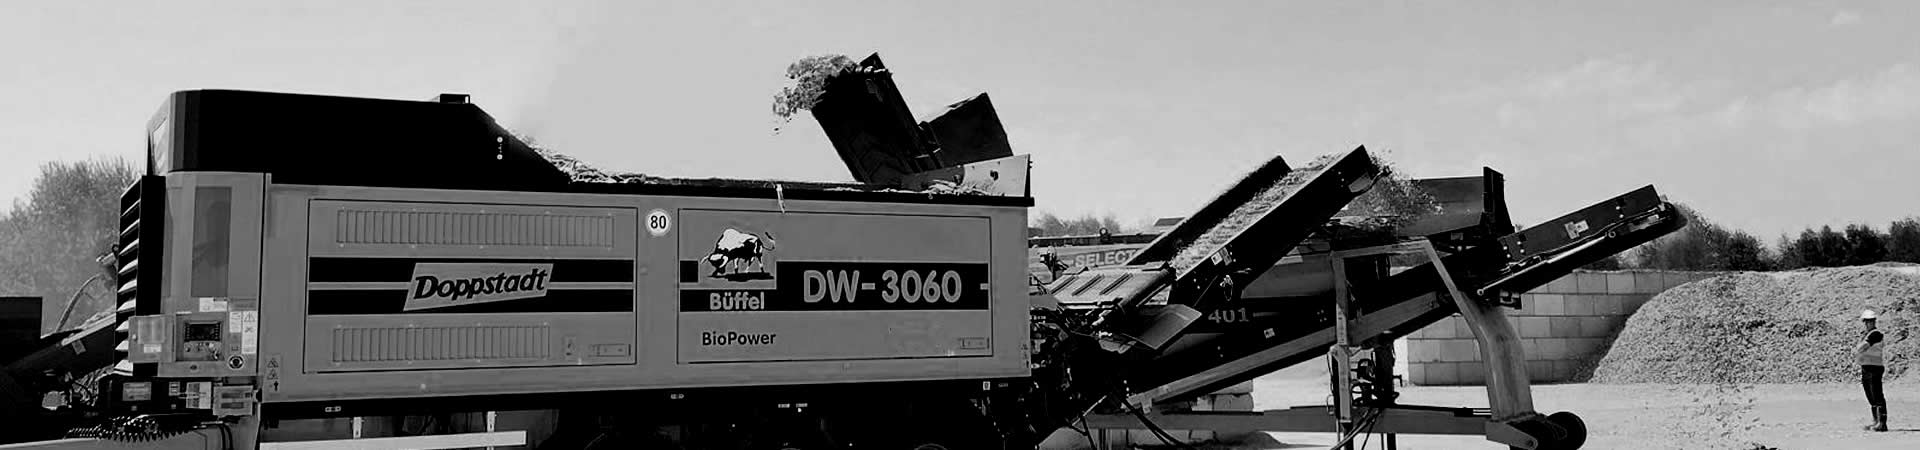 Doppstadt DW 3060 Type F Bio Shredder Header